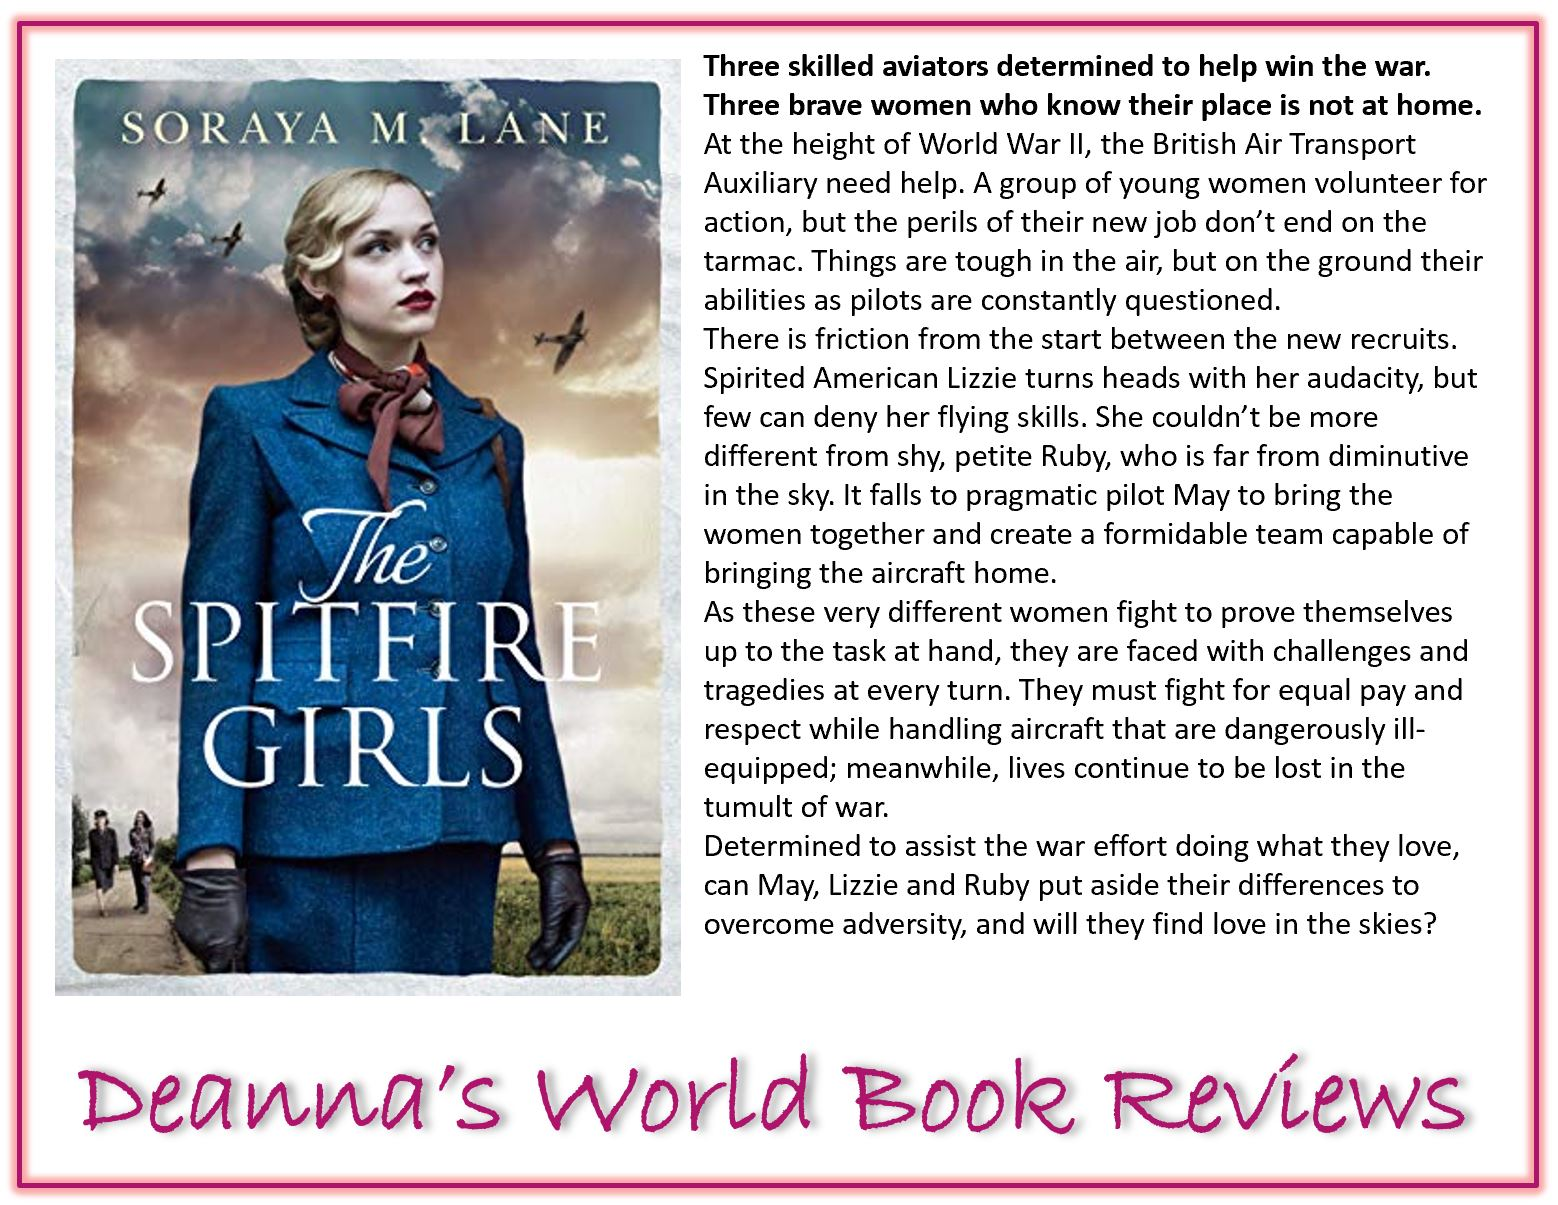 The Spitfire Girls by Soraya M Lane blurb